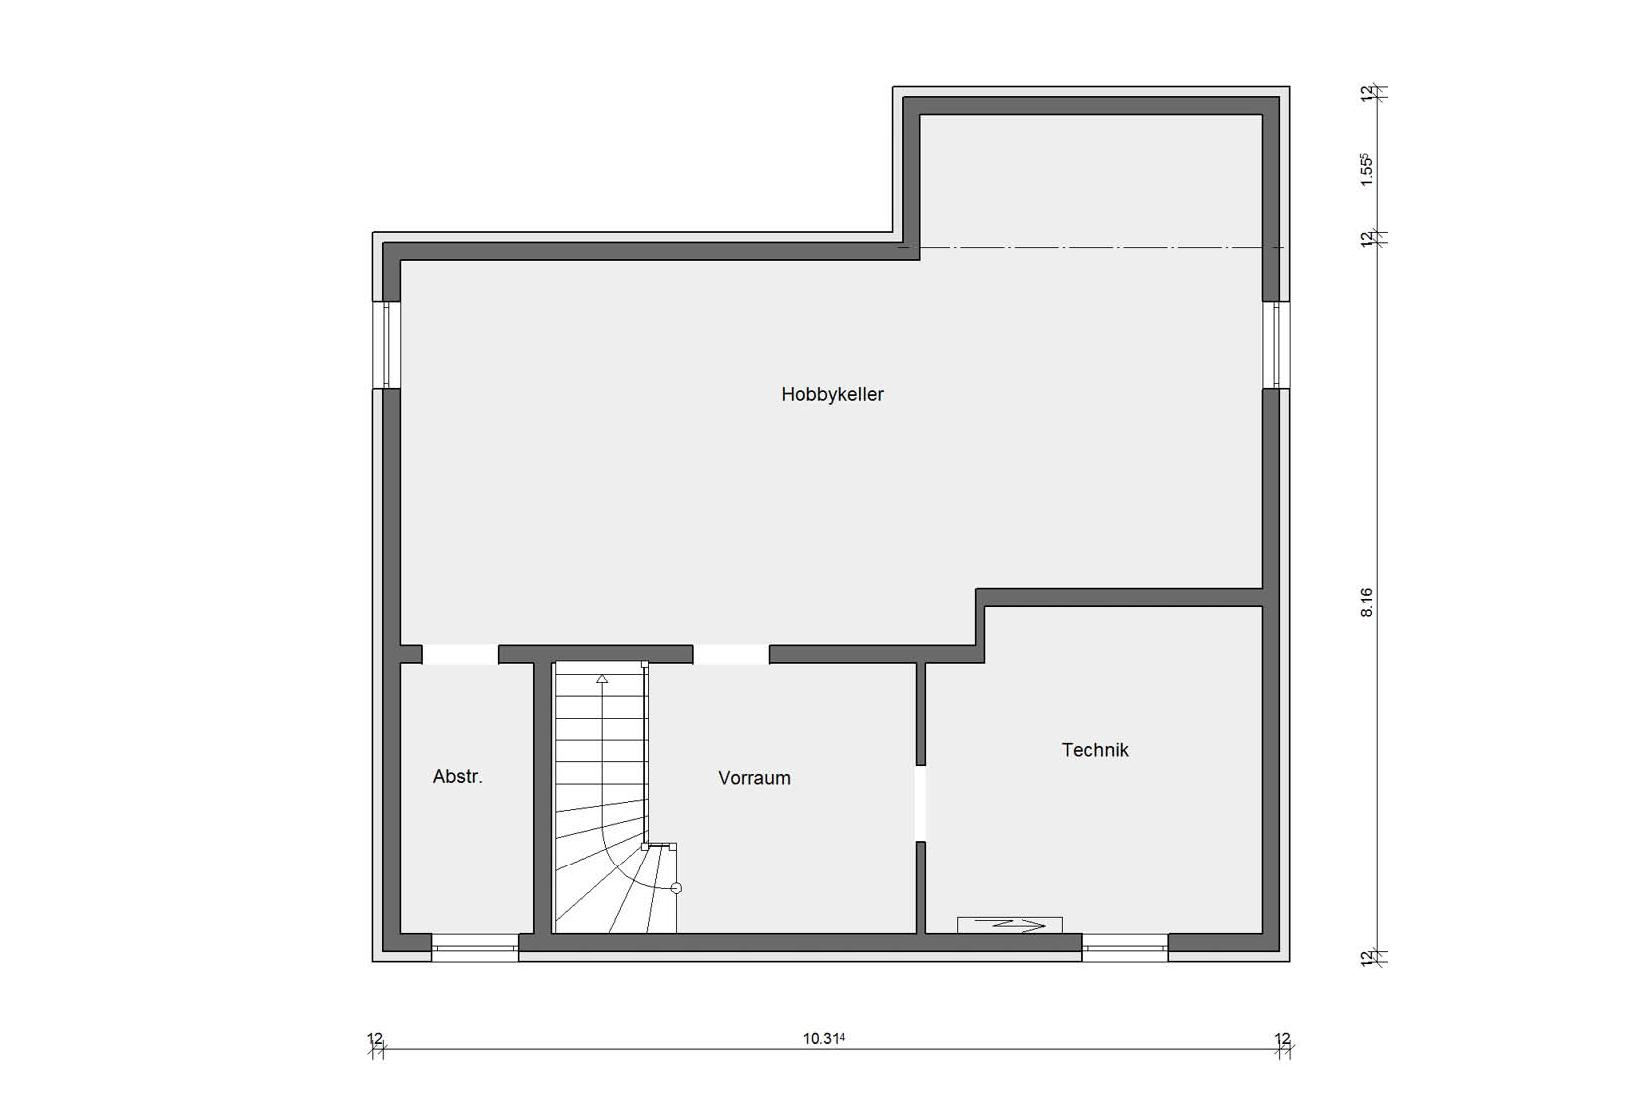 Basement floor plan Prefabricated house with wooden facade E 20-159.1